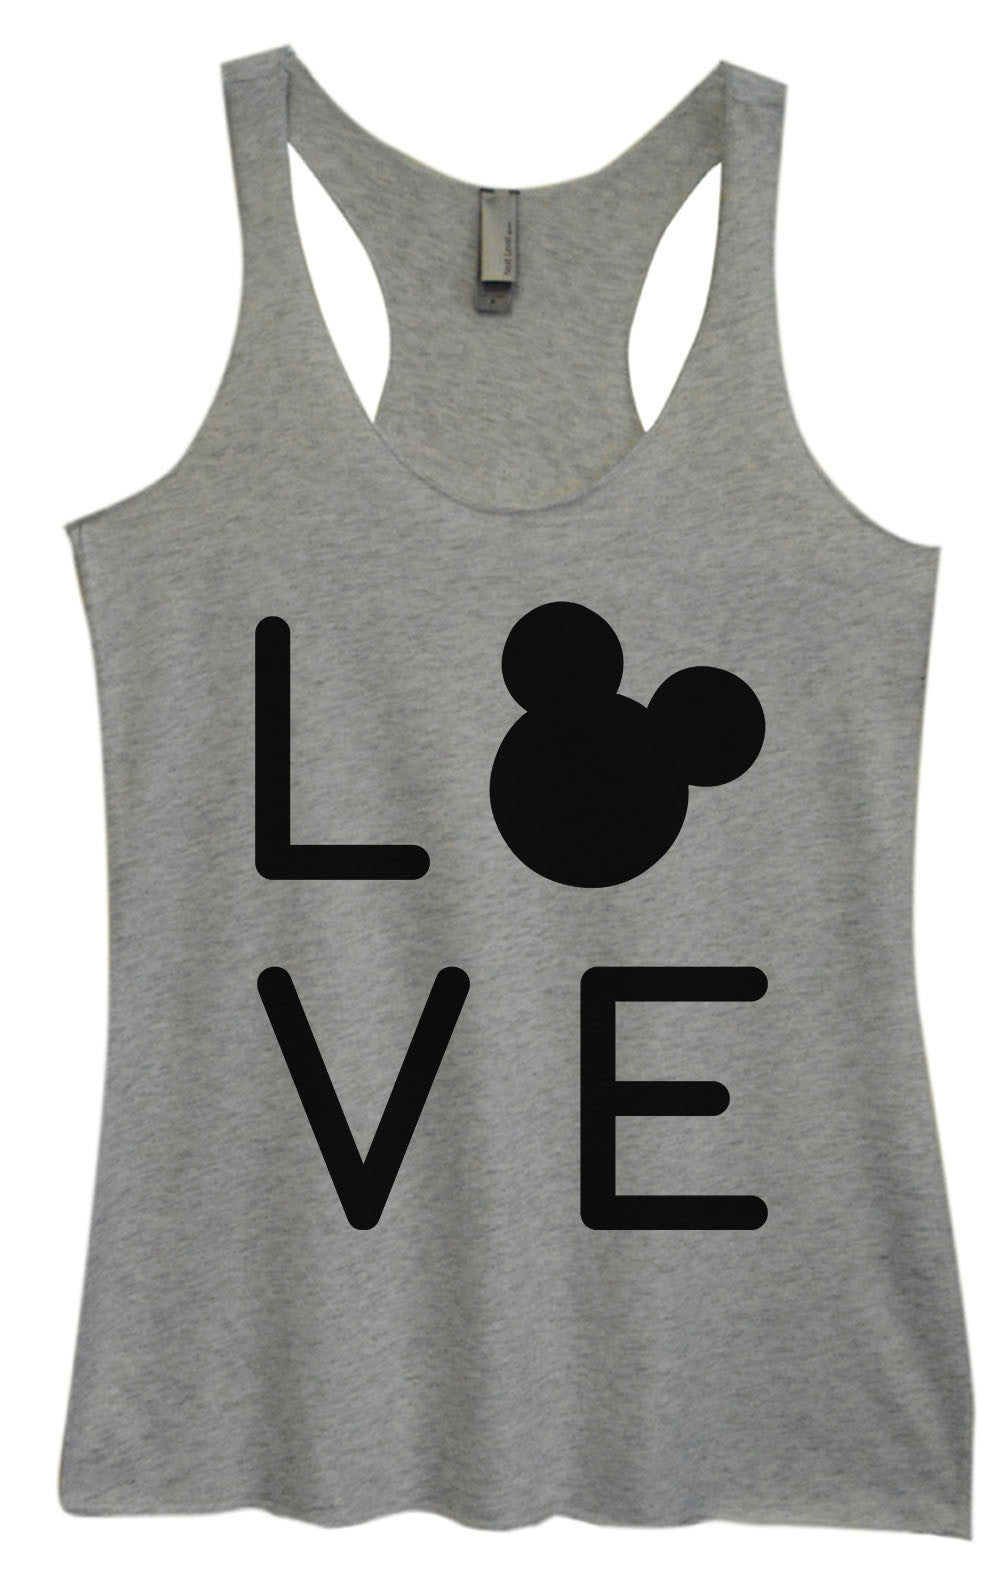 Womens Fashion Triblend Tank Top - Love - Tri-1574 - Funny Shirts Tank Tops Burnouts and Triblends  - 2